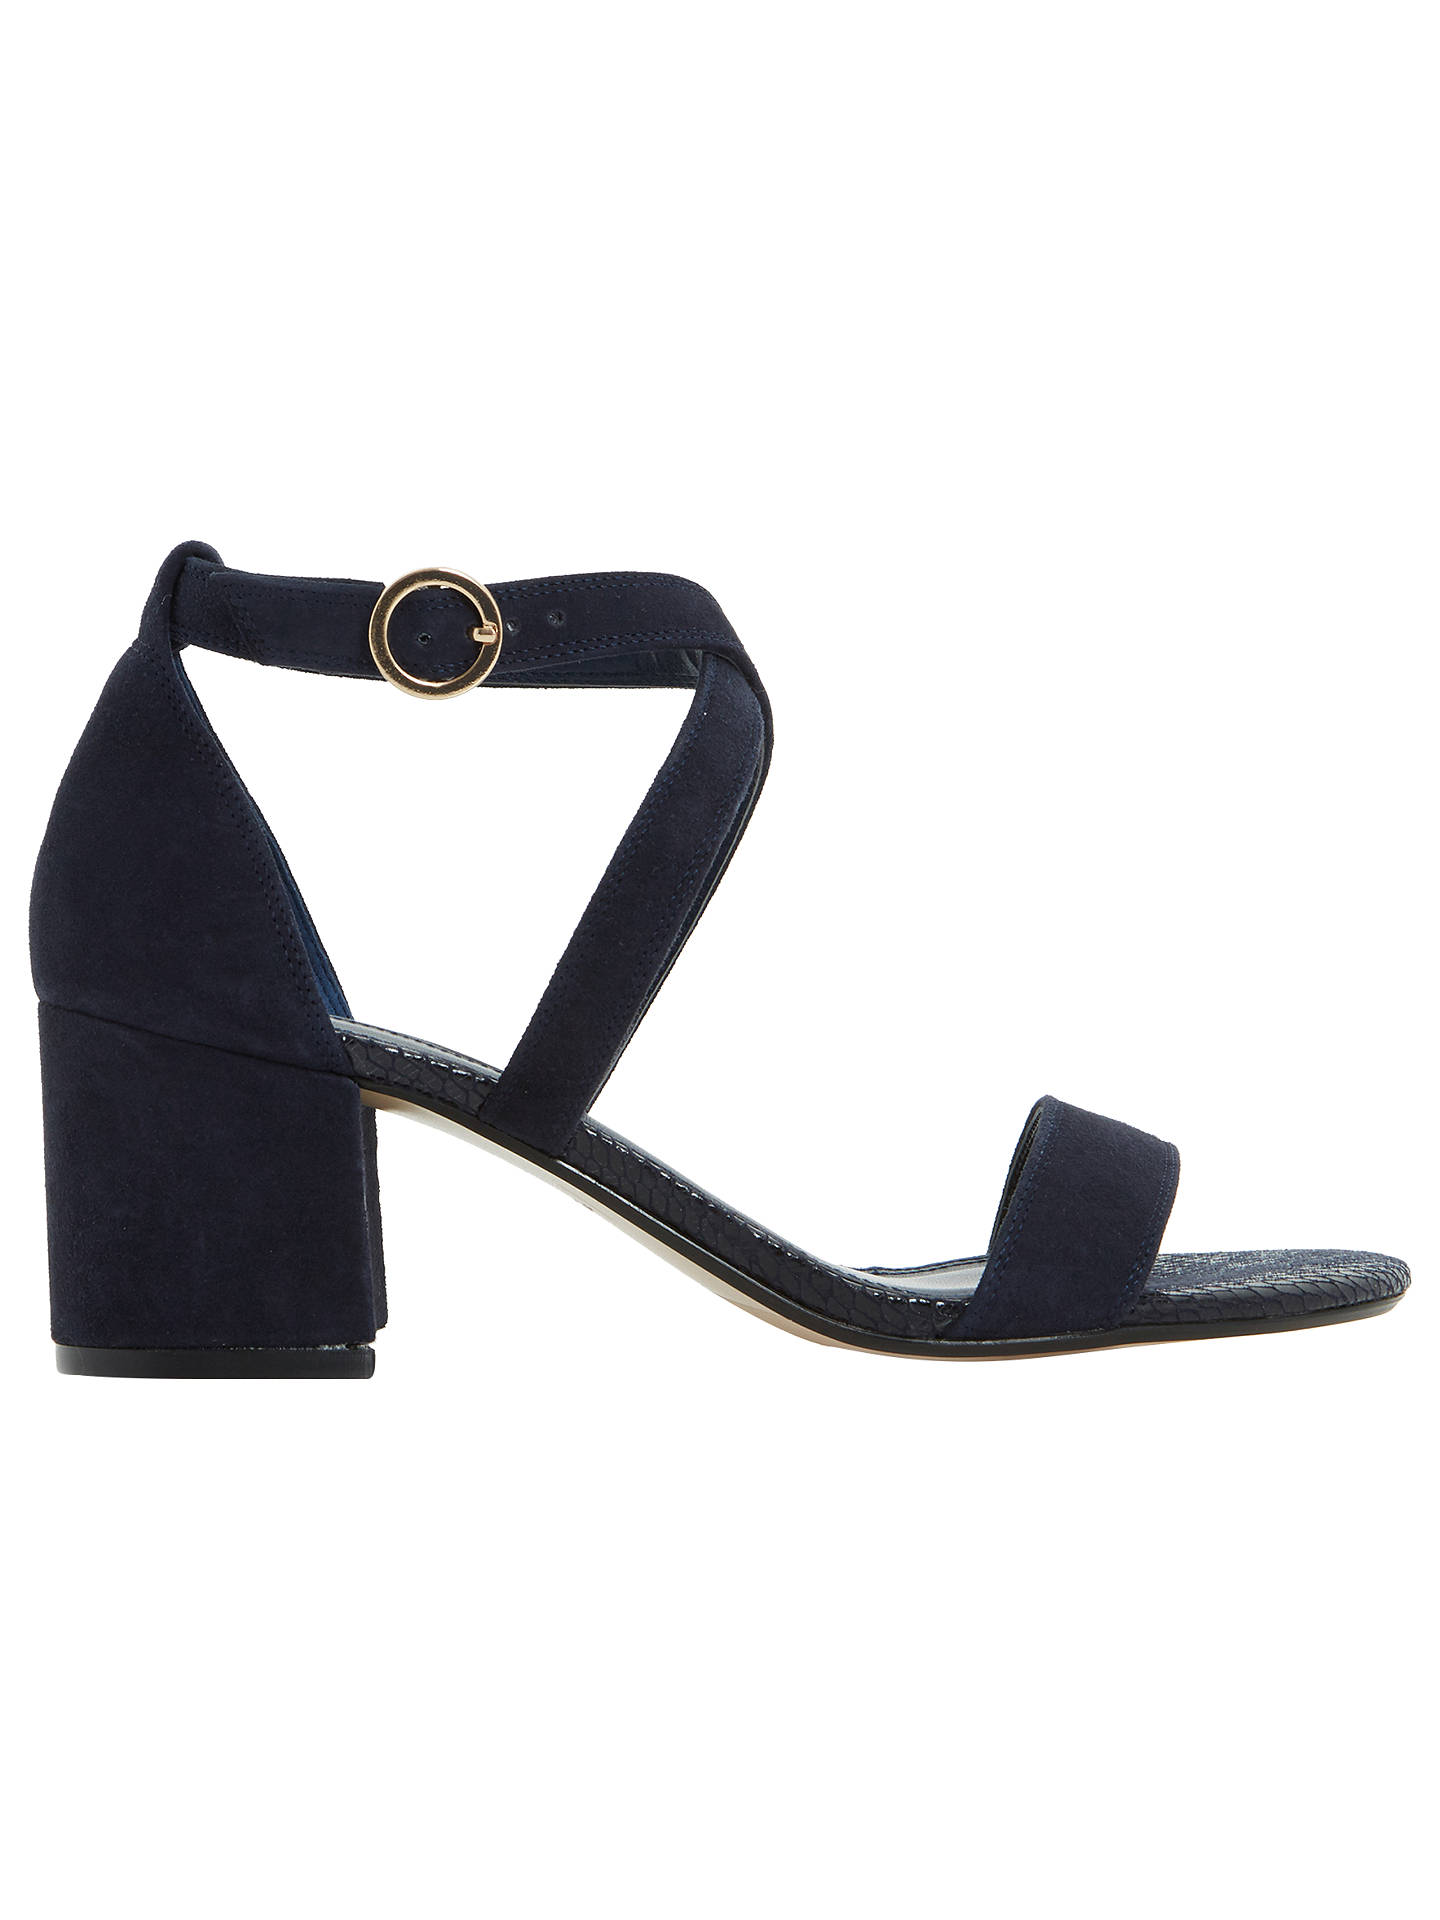 5ade96c3a7c2 Dune Montie Cross Strap Block Heeled Sandals at John Lewis   Partners